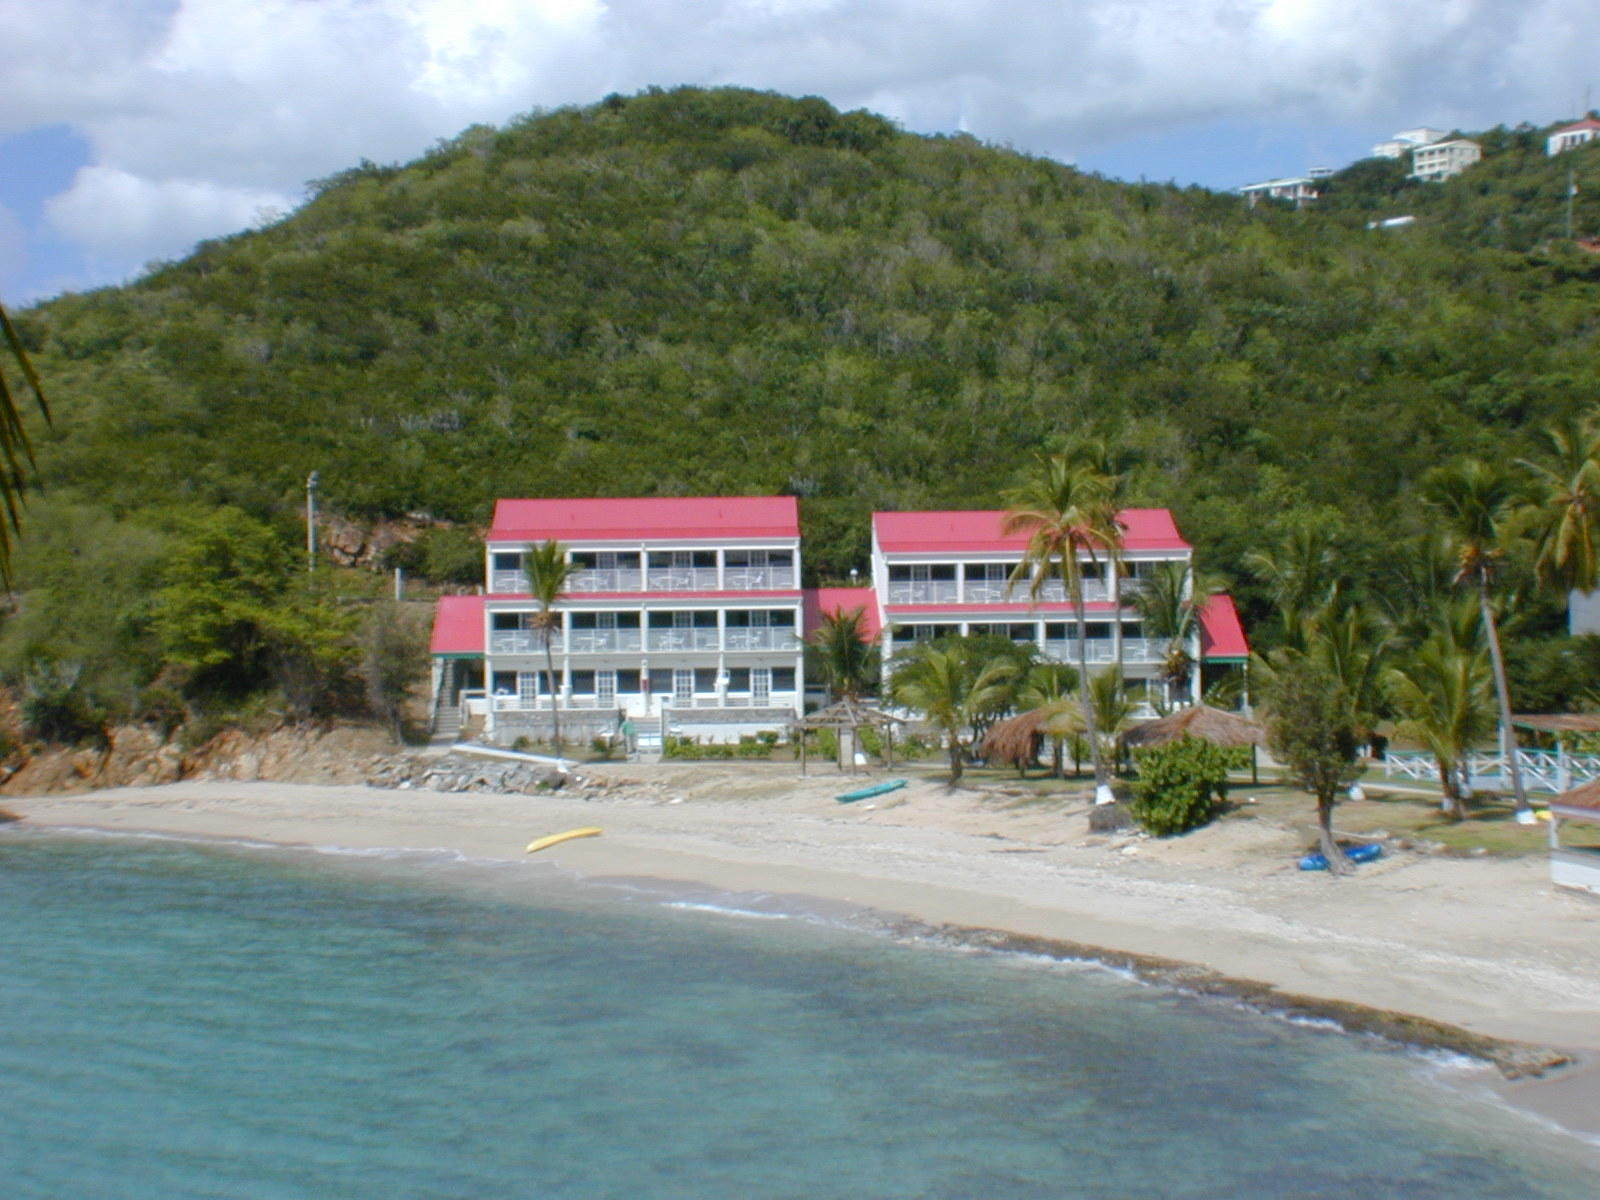 Timeshare Re At Bluebeard S Beach Club Villas Southside St Thomas Usvi R775994 Redweek